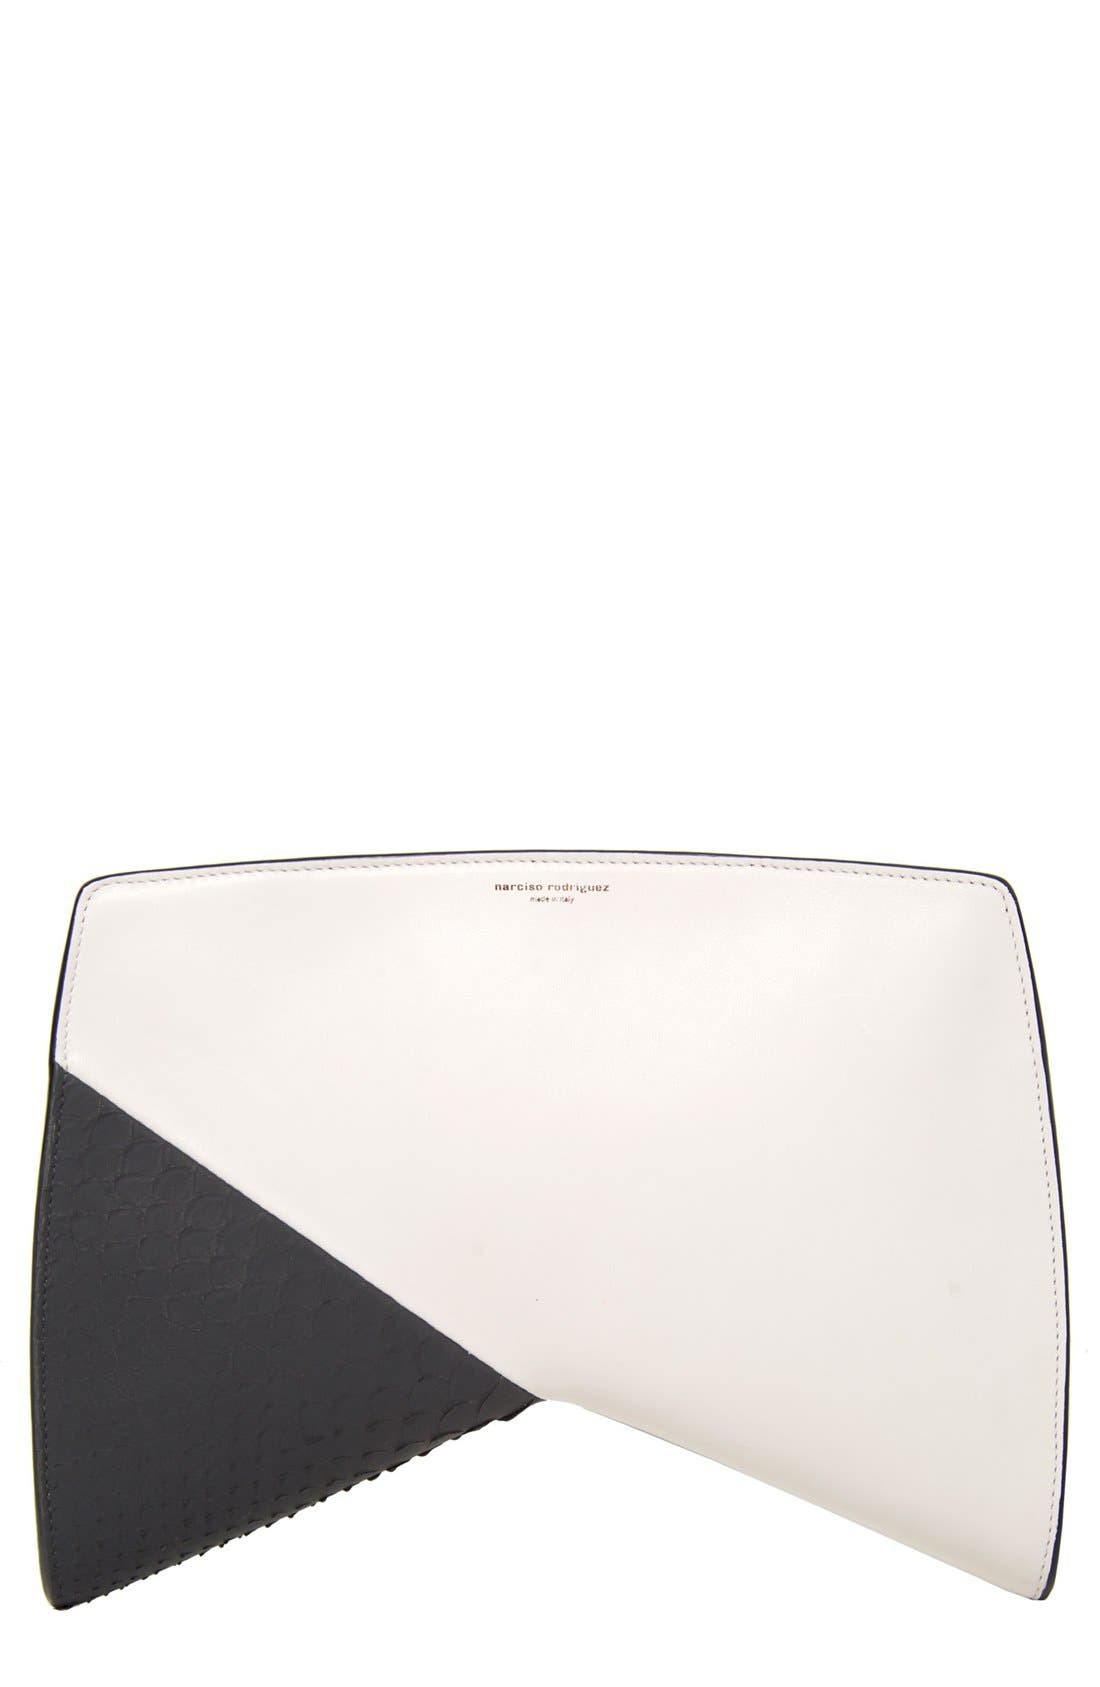 Alternate Image 1 Selected - Narciso Rodriguez 'Boomerang' Genuine Python & Leather Clutch